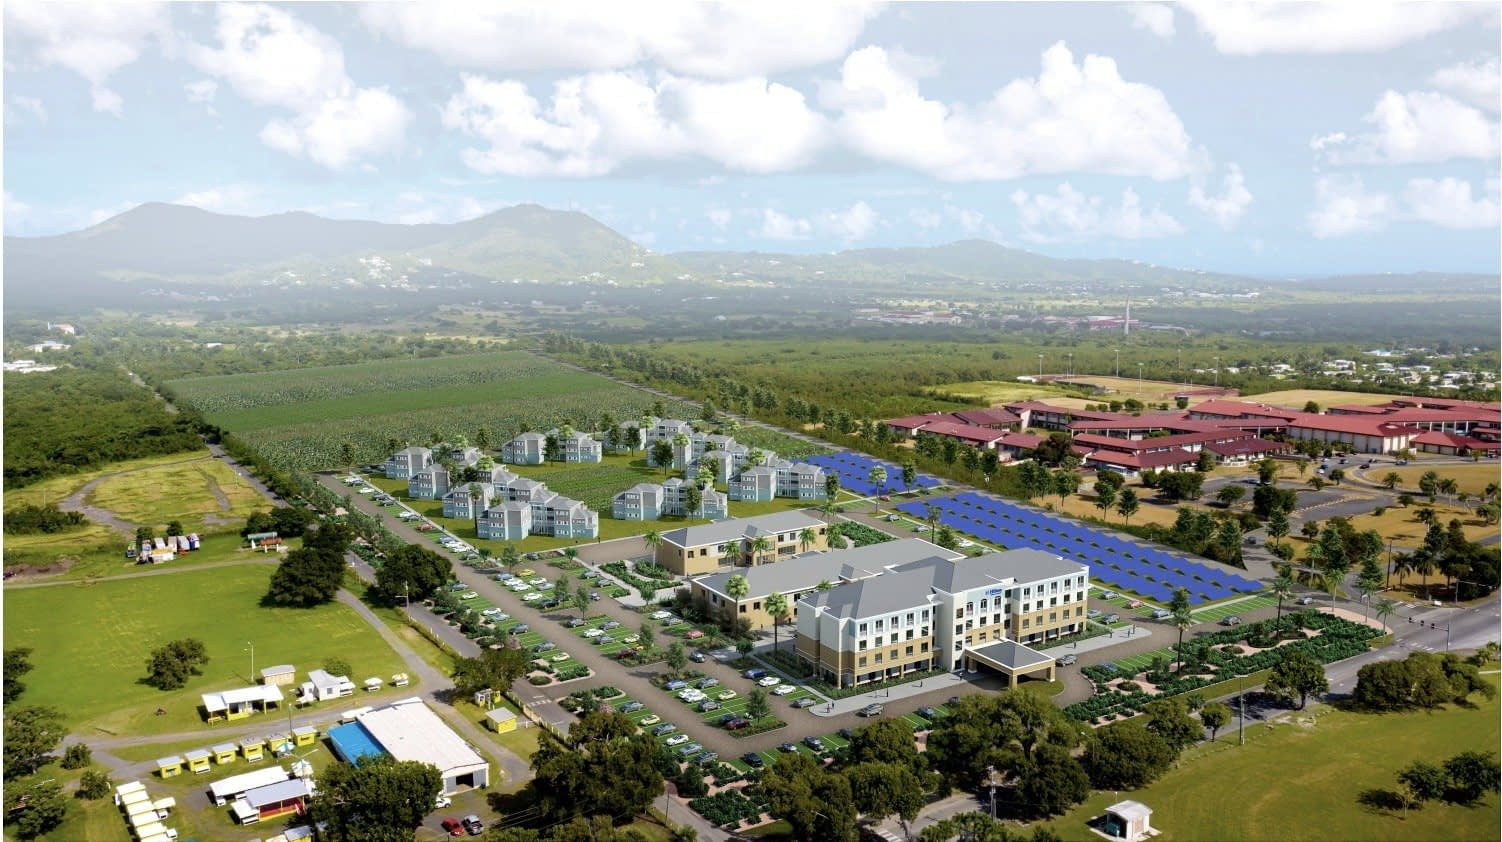 , UVI Research and Technology Park – Tech Village: A St. Croix Sustainable Economic Development Project, TheCircularEconomy.com